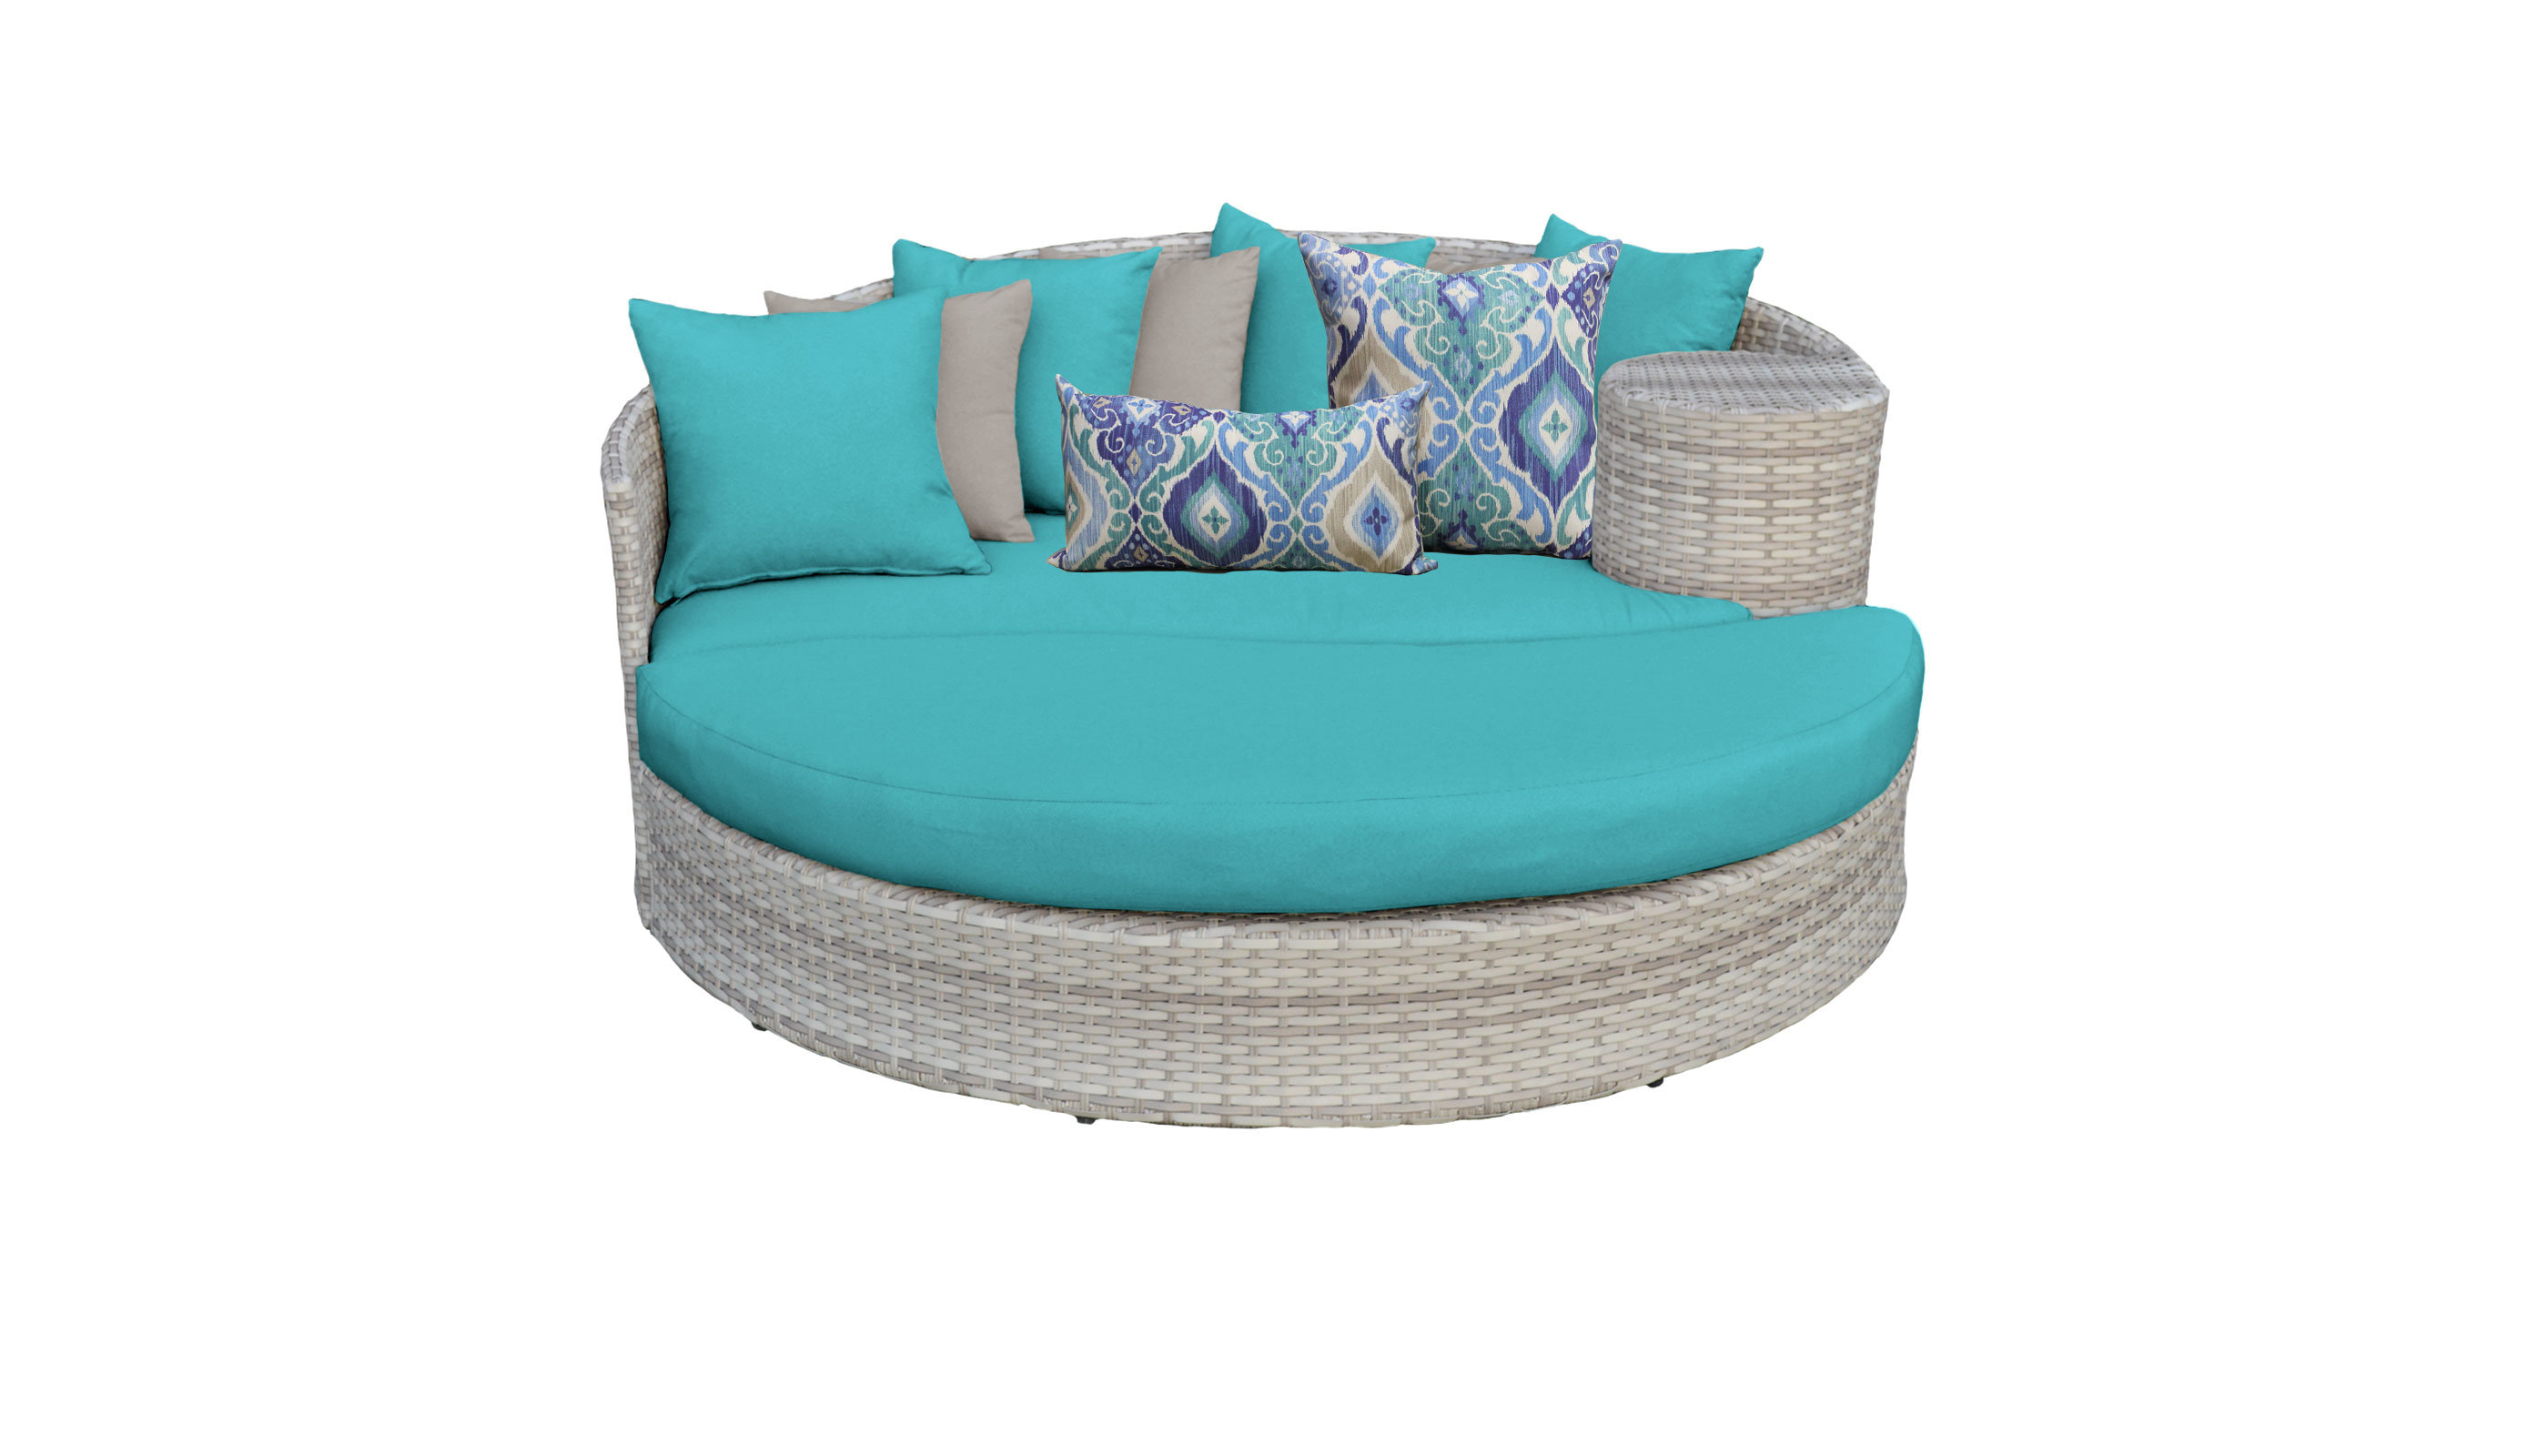 2020 Falmouth Patio Daybed With Cushions Within Patio Daybeds With Cushions (View 1 of 20)